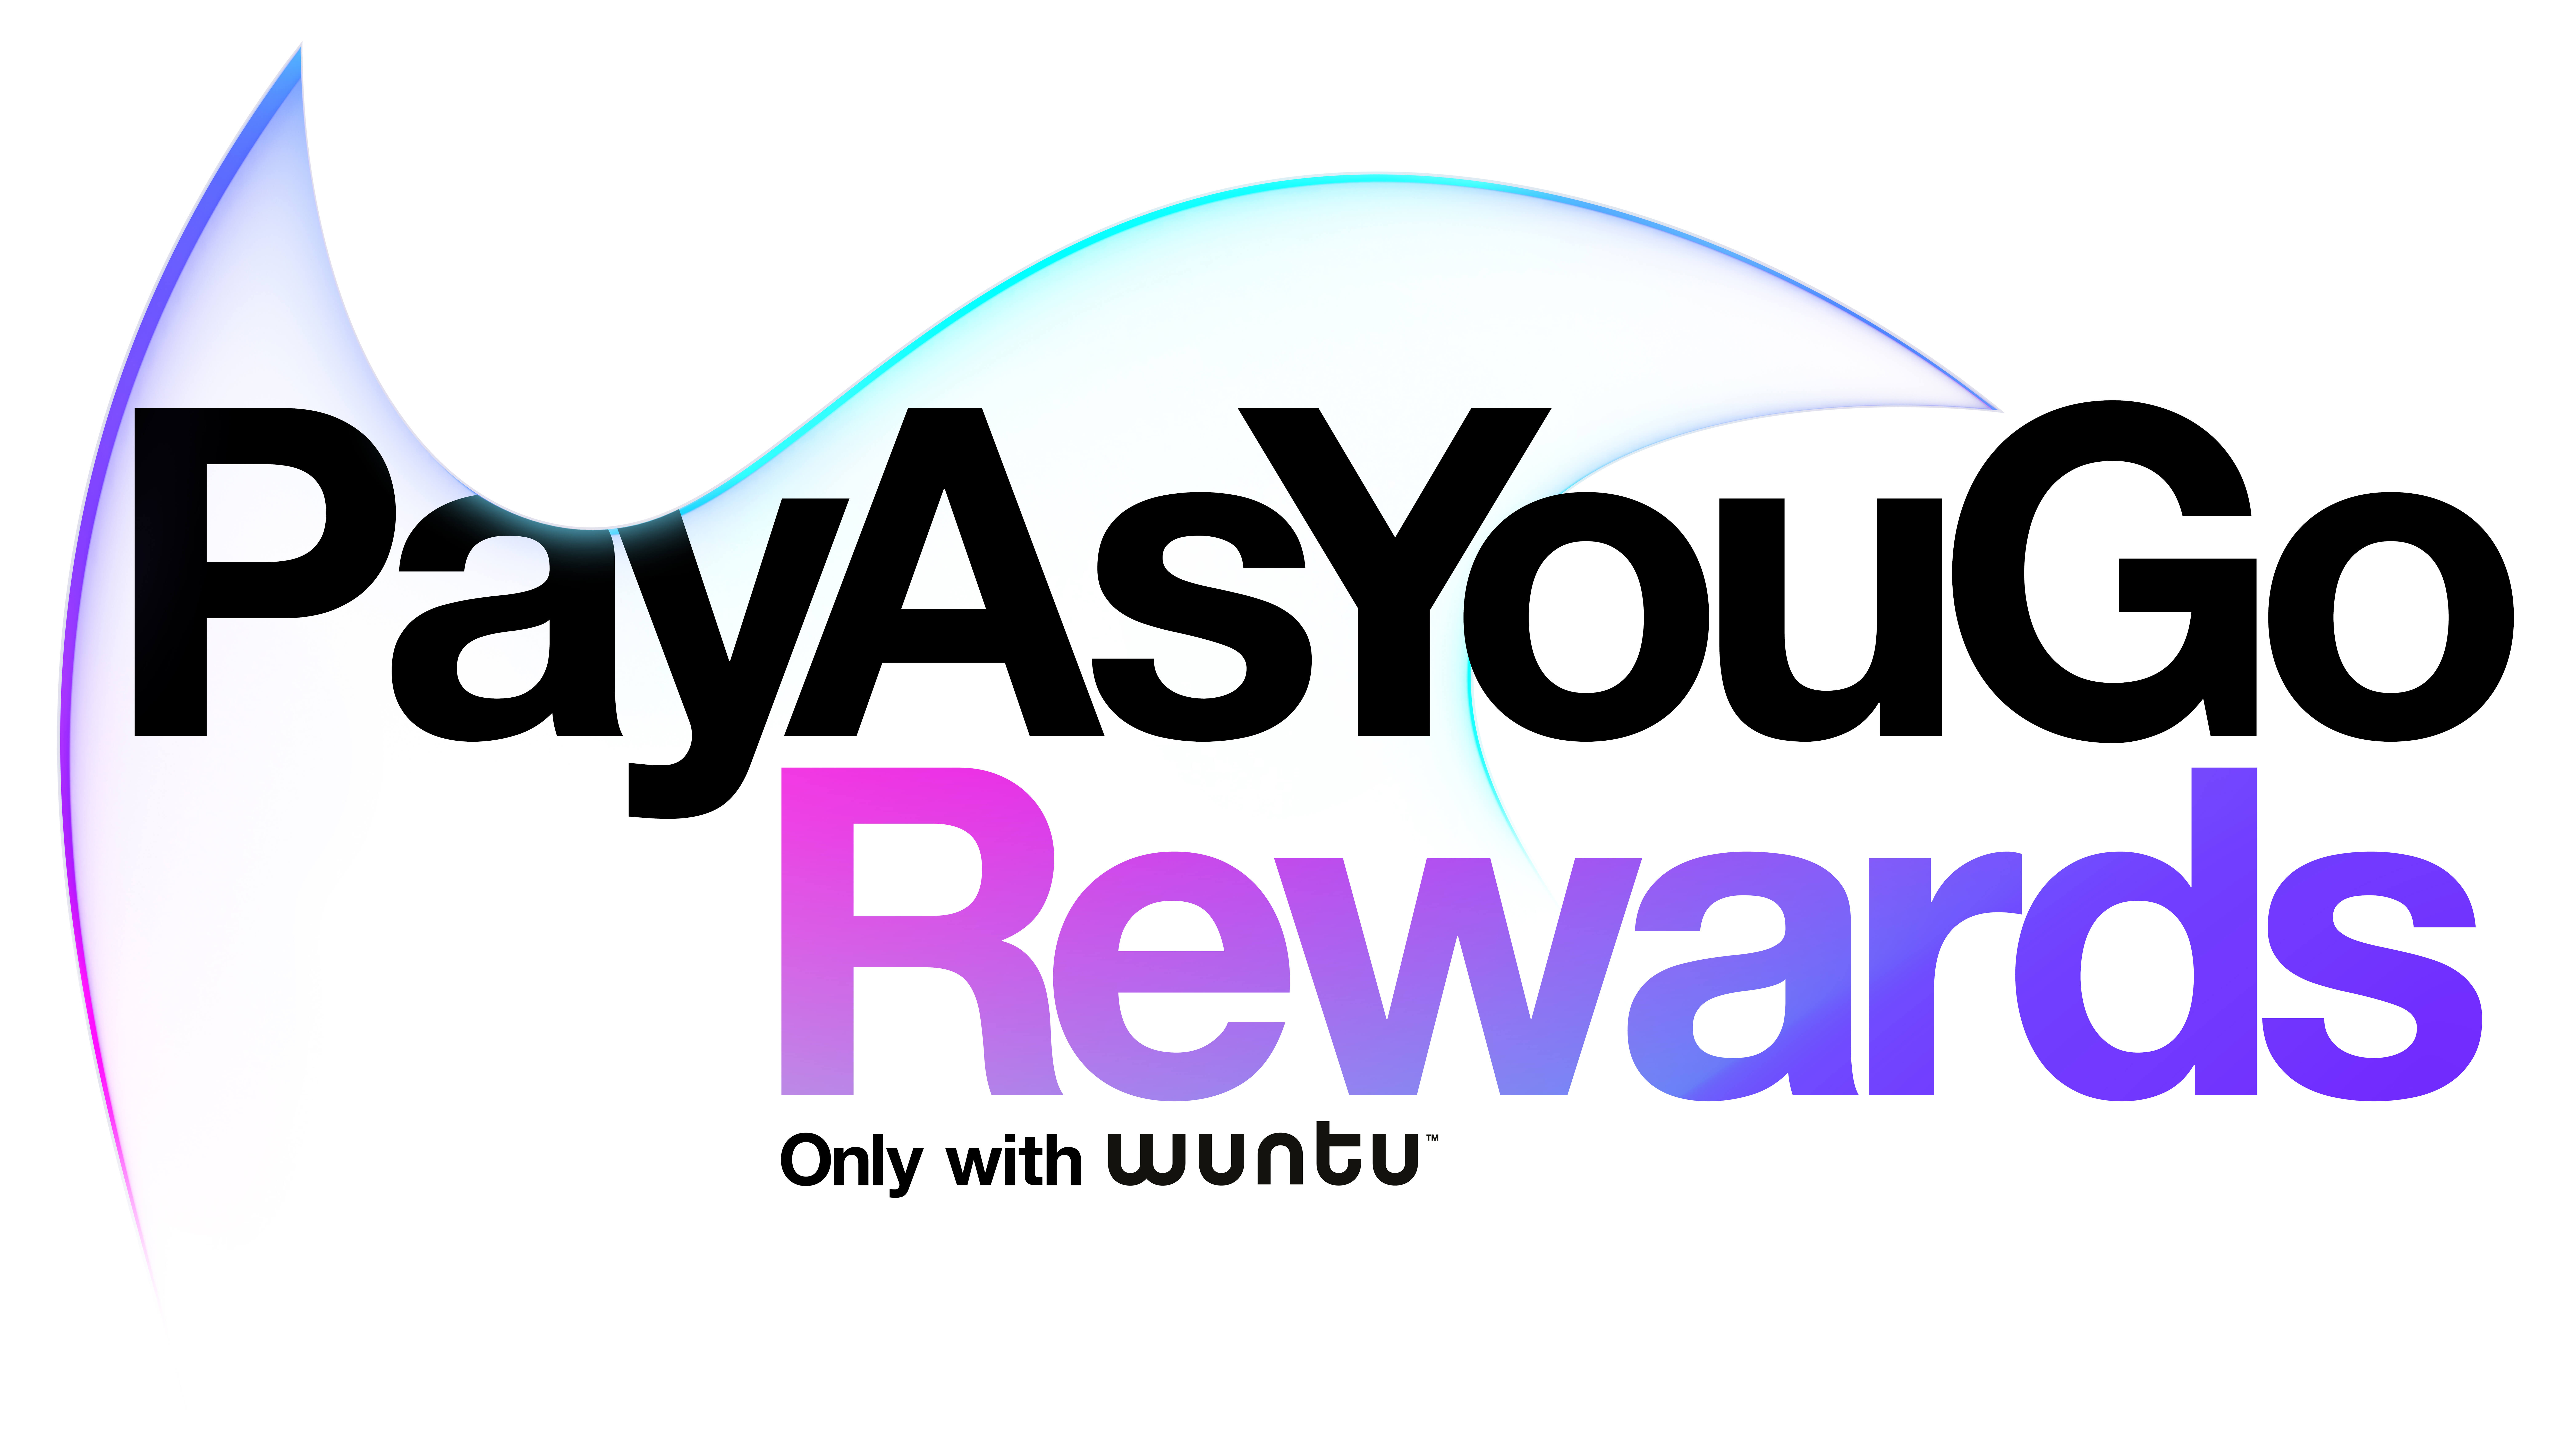 Three Pay As You Go Rewards